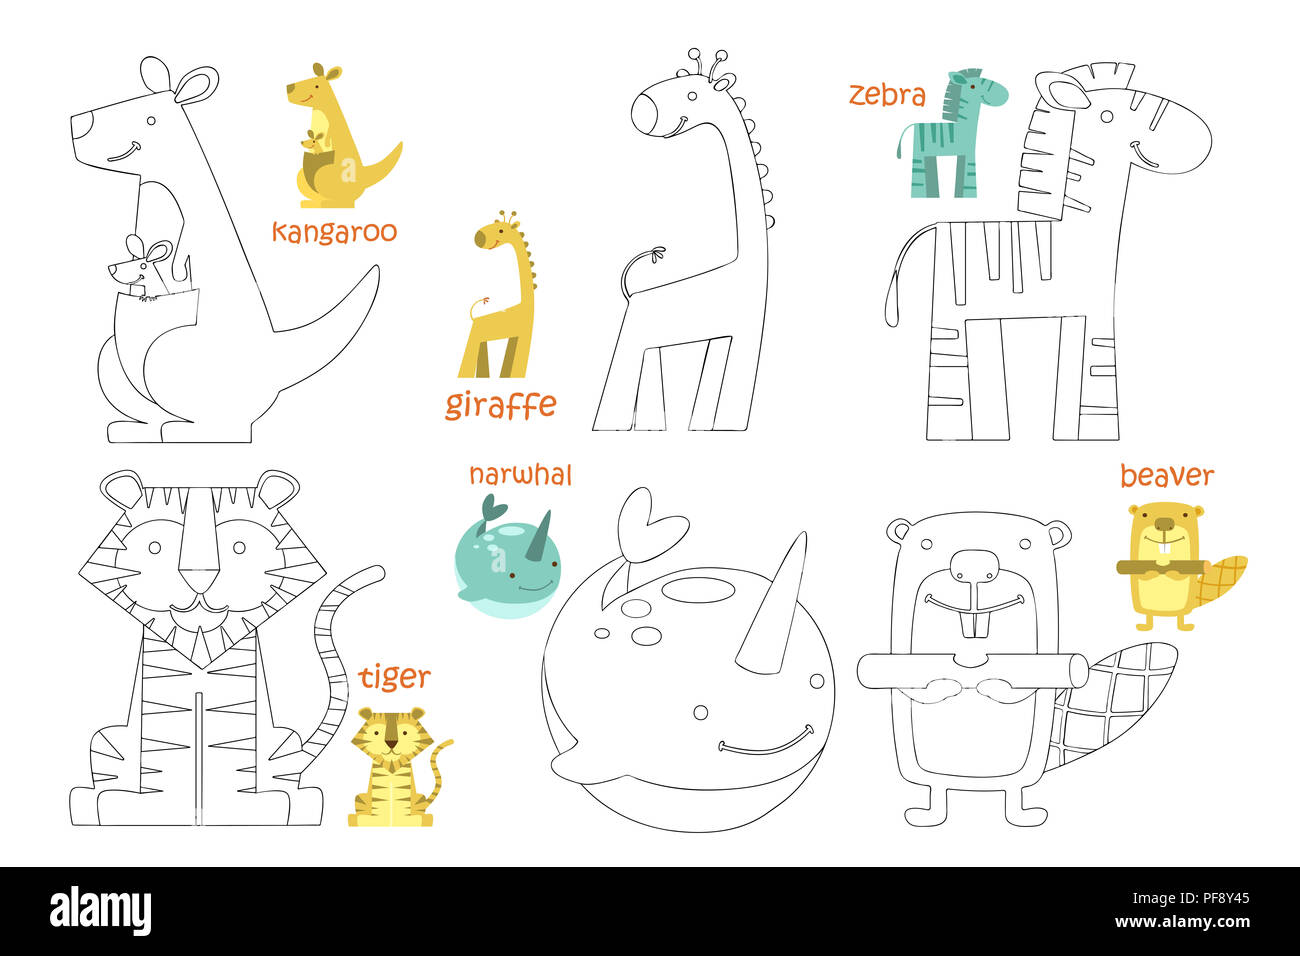 Coloring Page For Kids High Resolution Stock Photography and ...